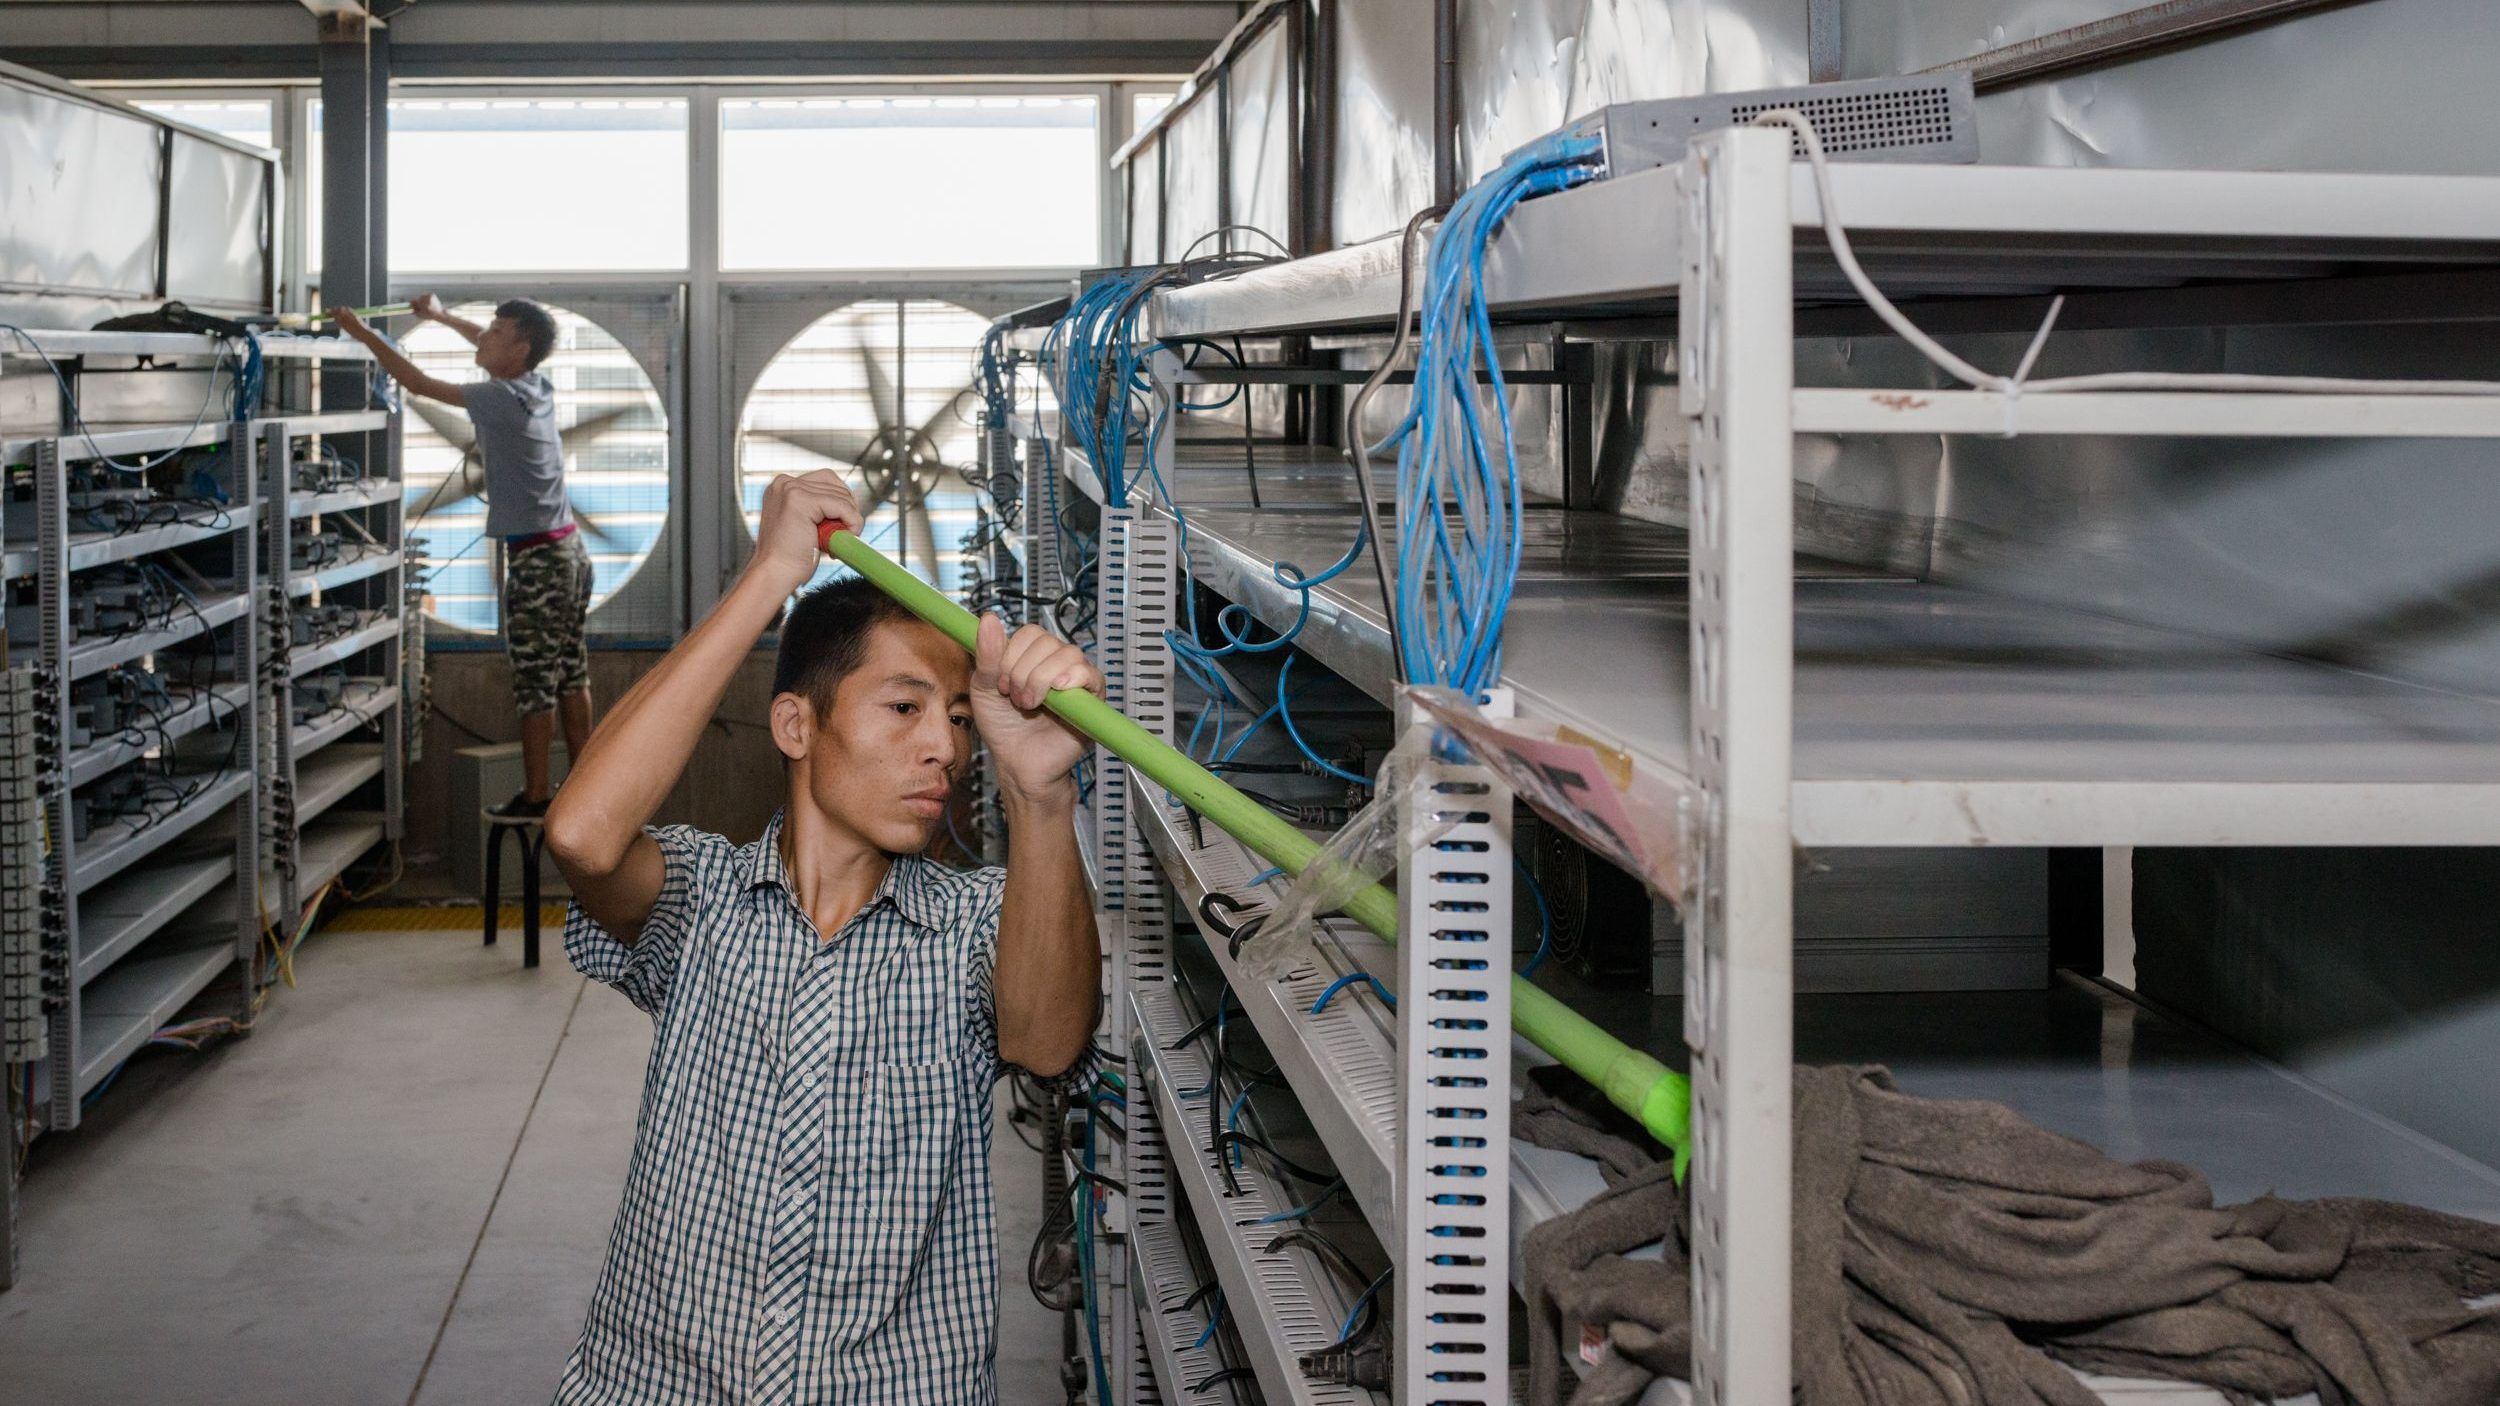 Workers clean the shelves of bitcoin-mining machines in Bitmain's mining operation in Inner Mongolia.